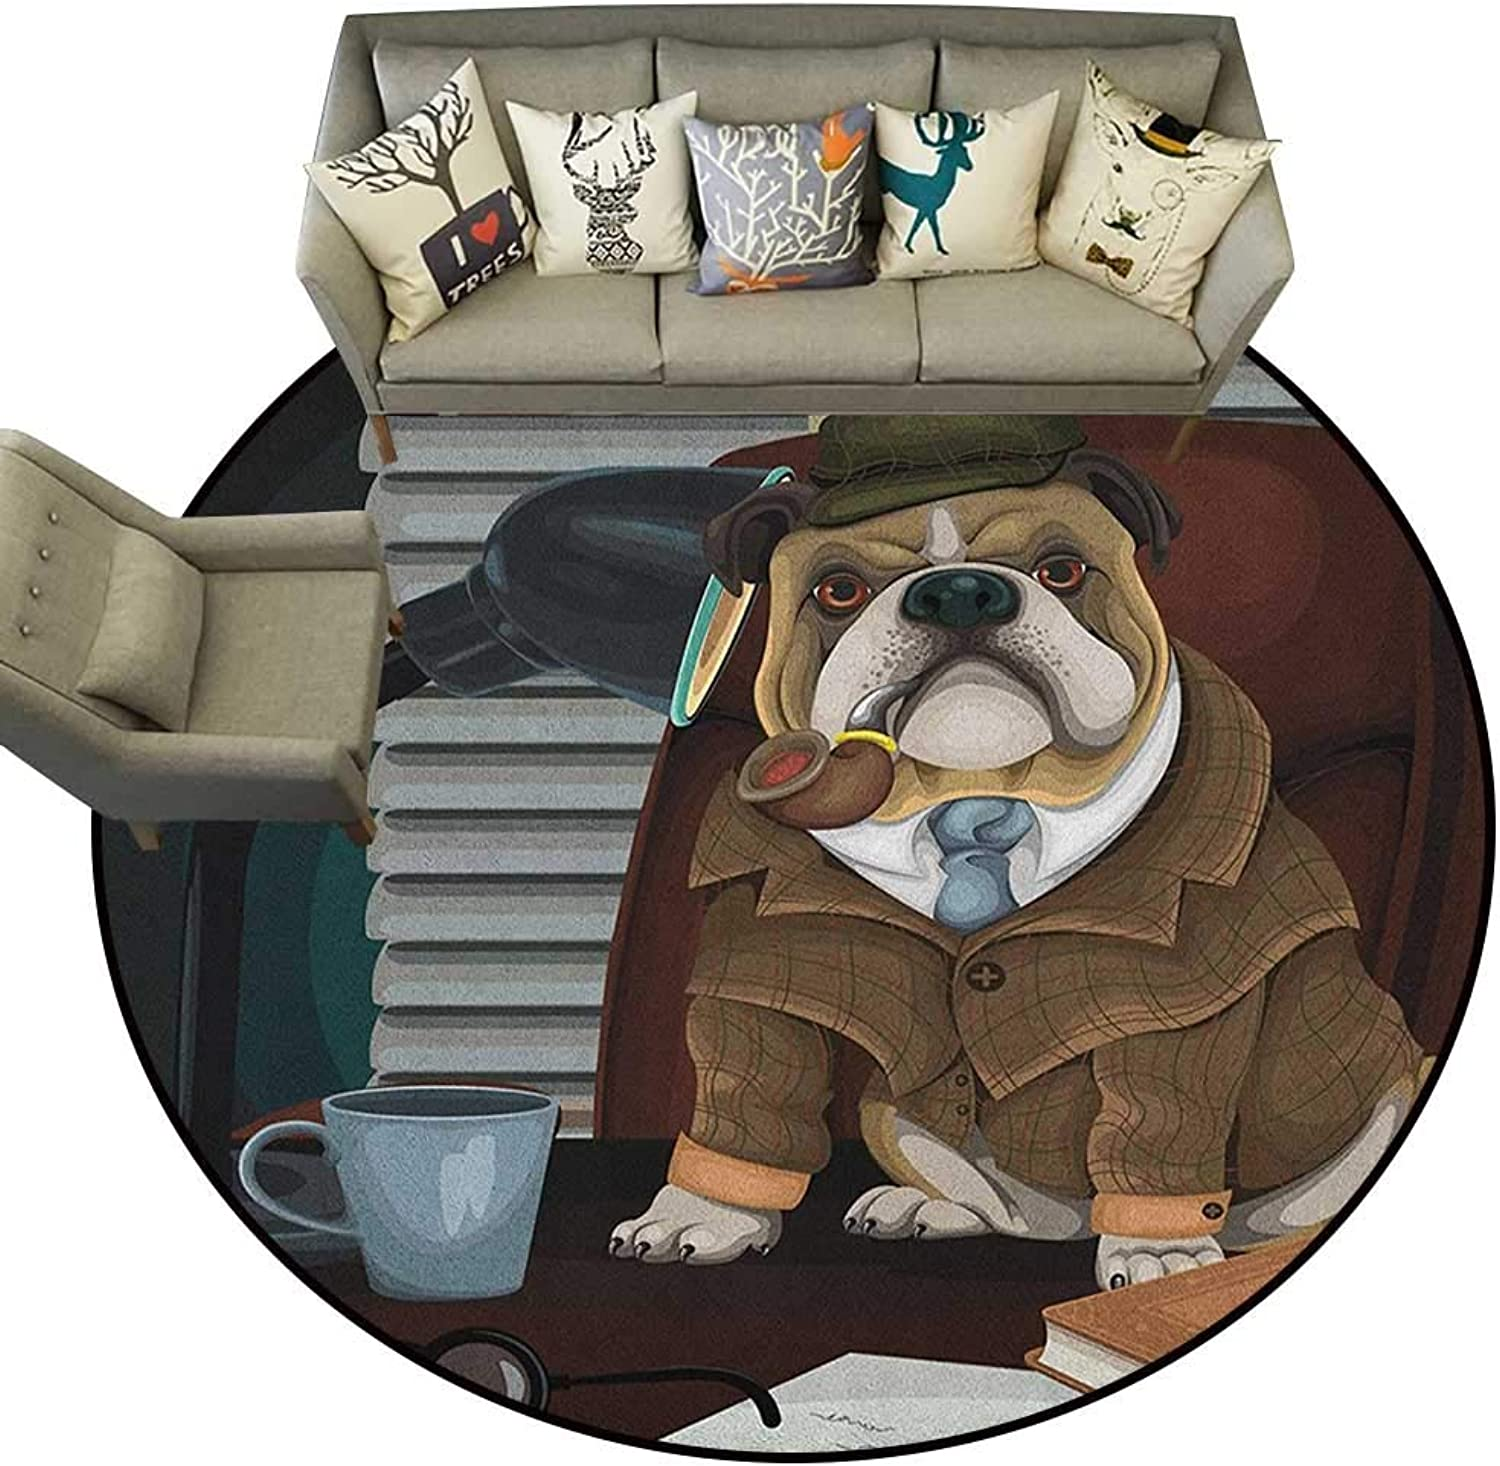 English Bulldog,Floor mats for Trucks Traditional English Detective Dog with a Pipe and Hat Sherlock Holmes Image D36 Door Mat Living Room Non-Slip